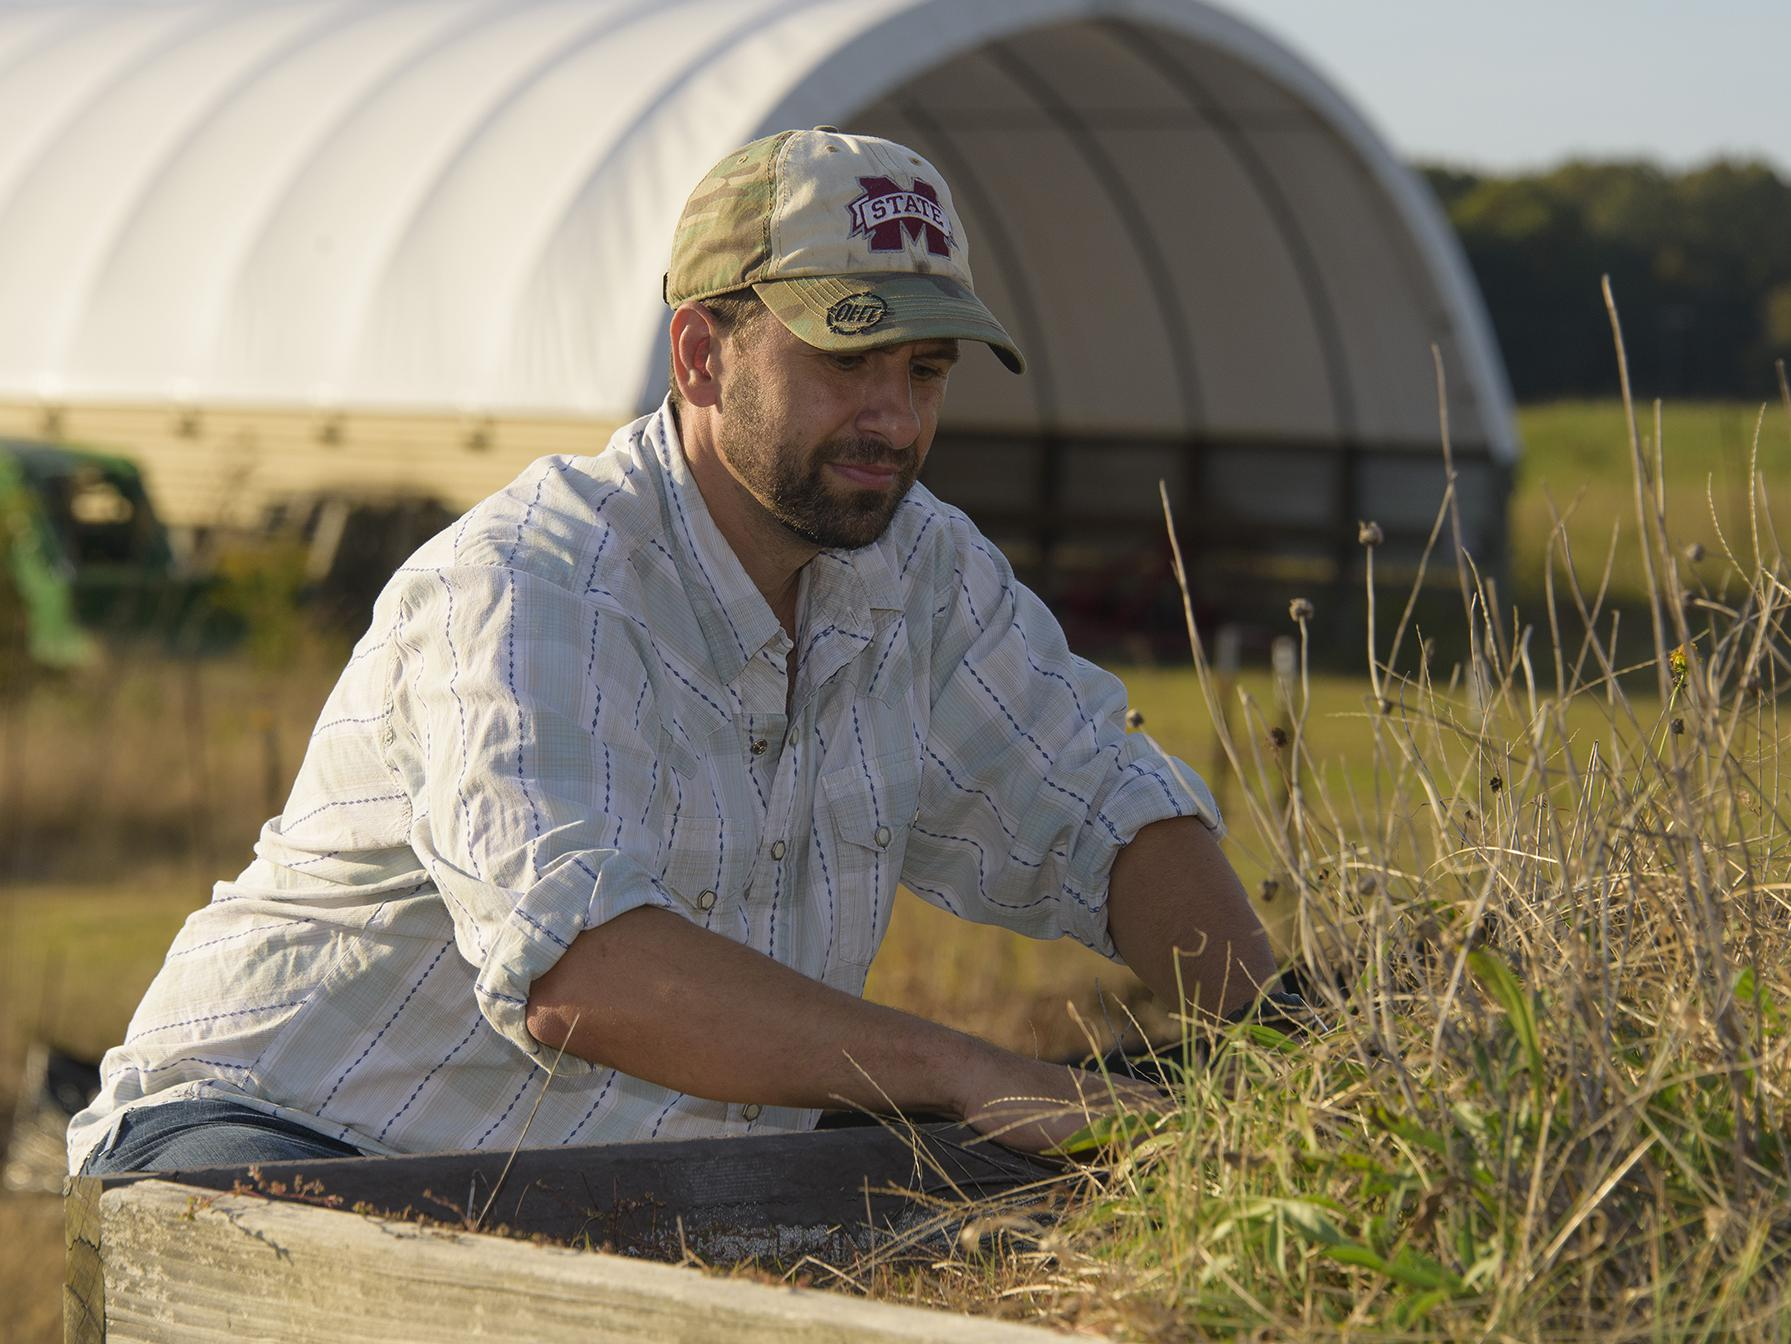 A man in a baseball cap reaches into a patch of grass, while a tractor and a white, high-tunnel structure stand behind him.